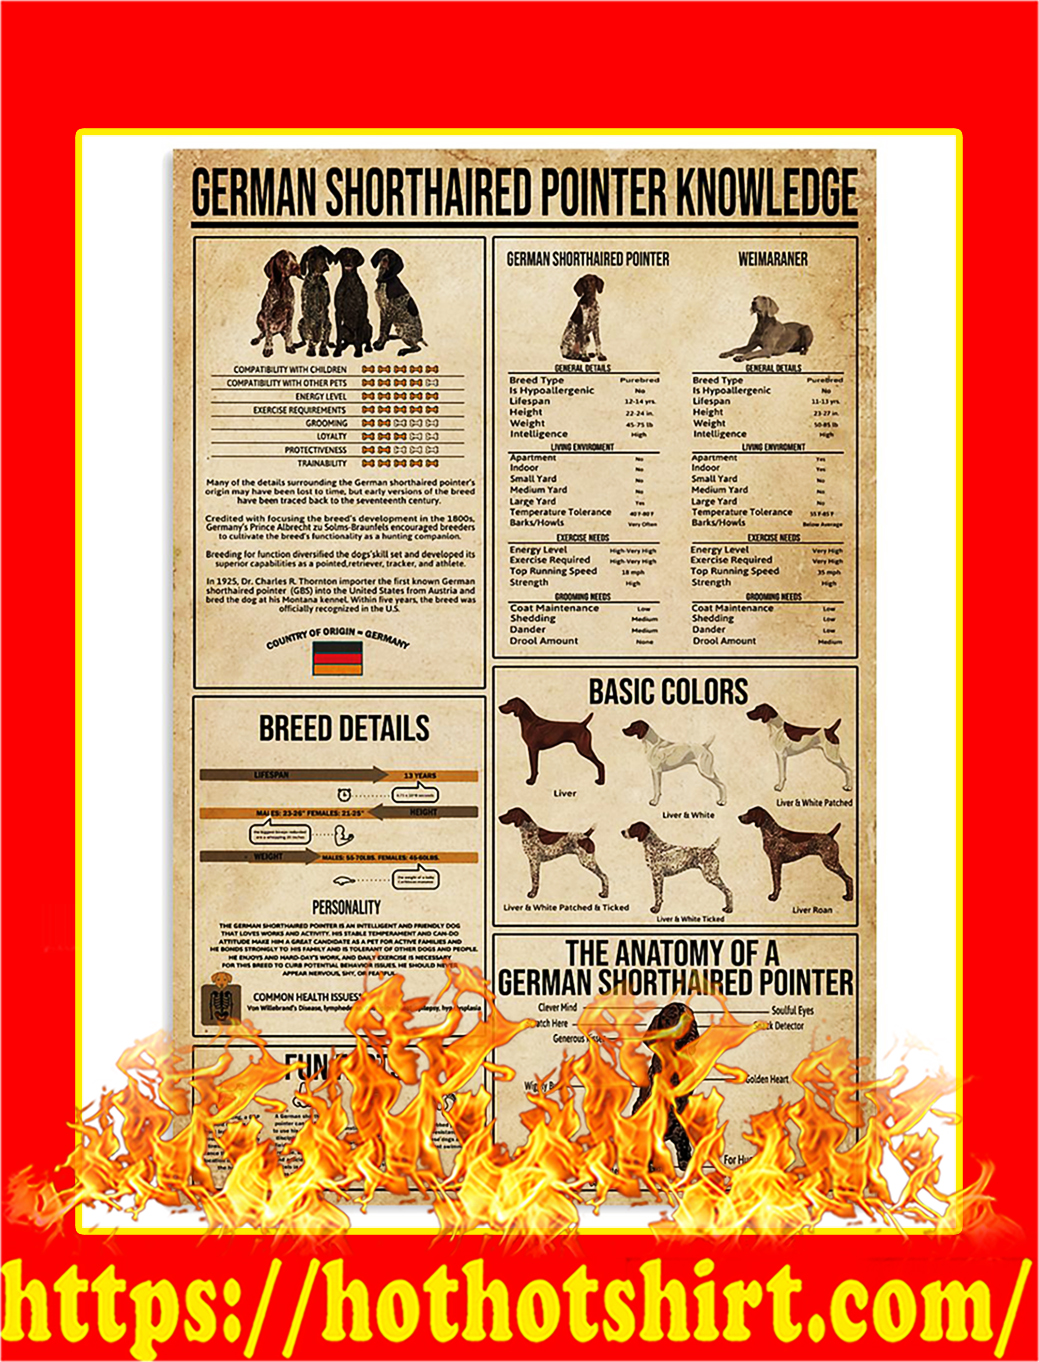 German Shorthaired Pointer Knowledge Poster - A1